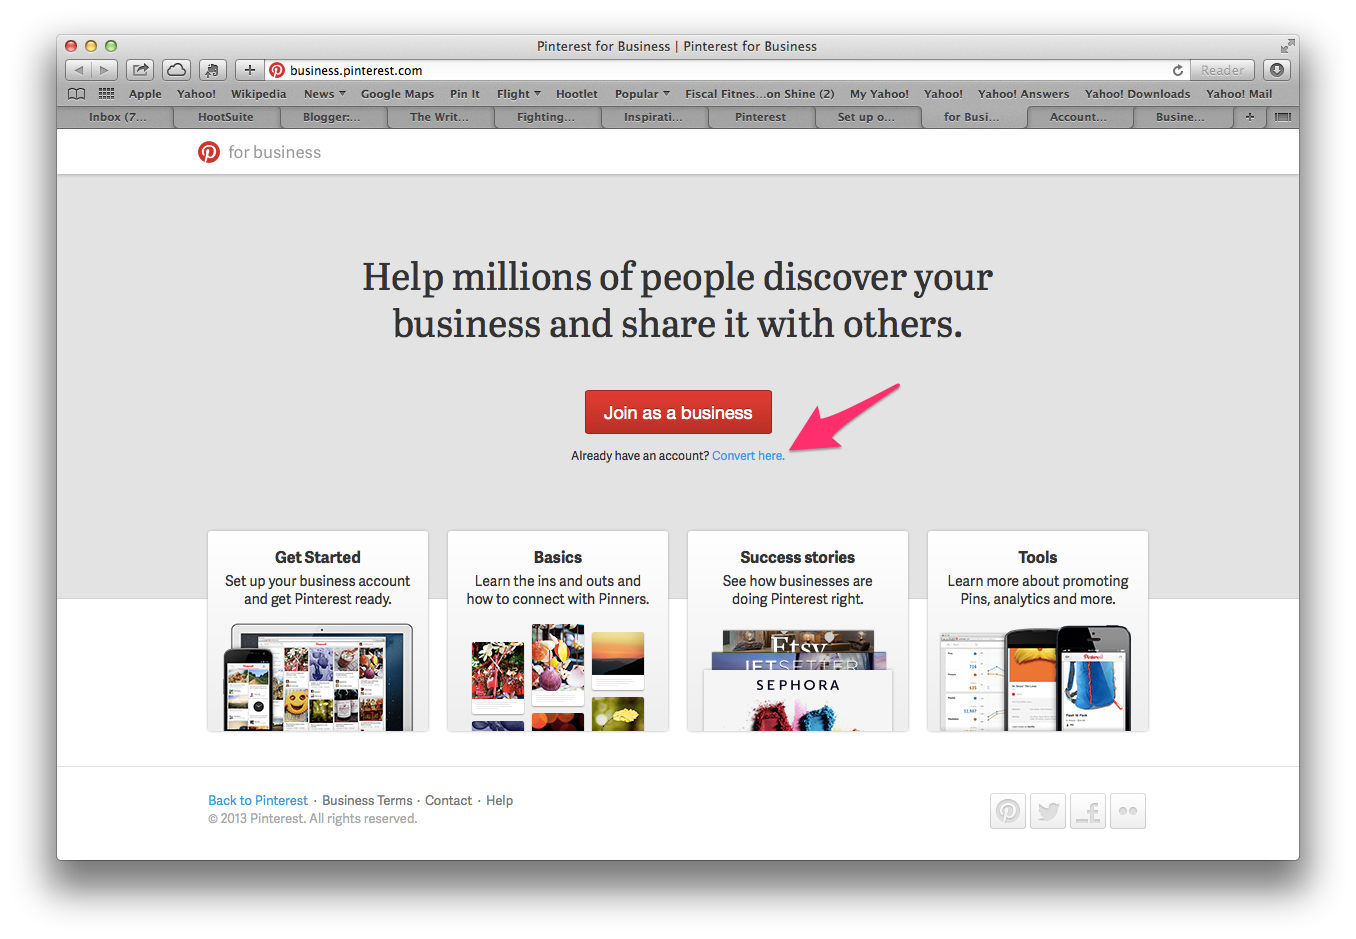 The Write Conversation: Pinterest Business or Personal Page